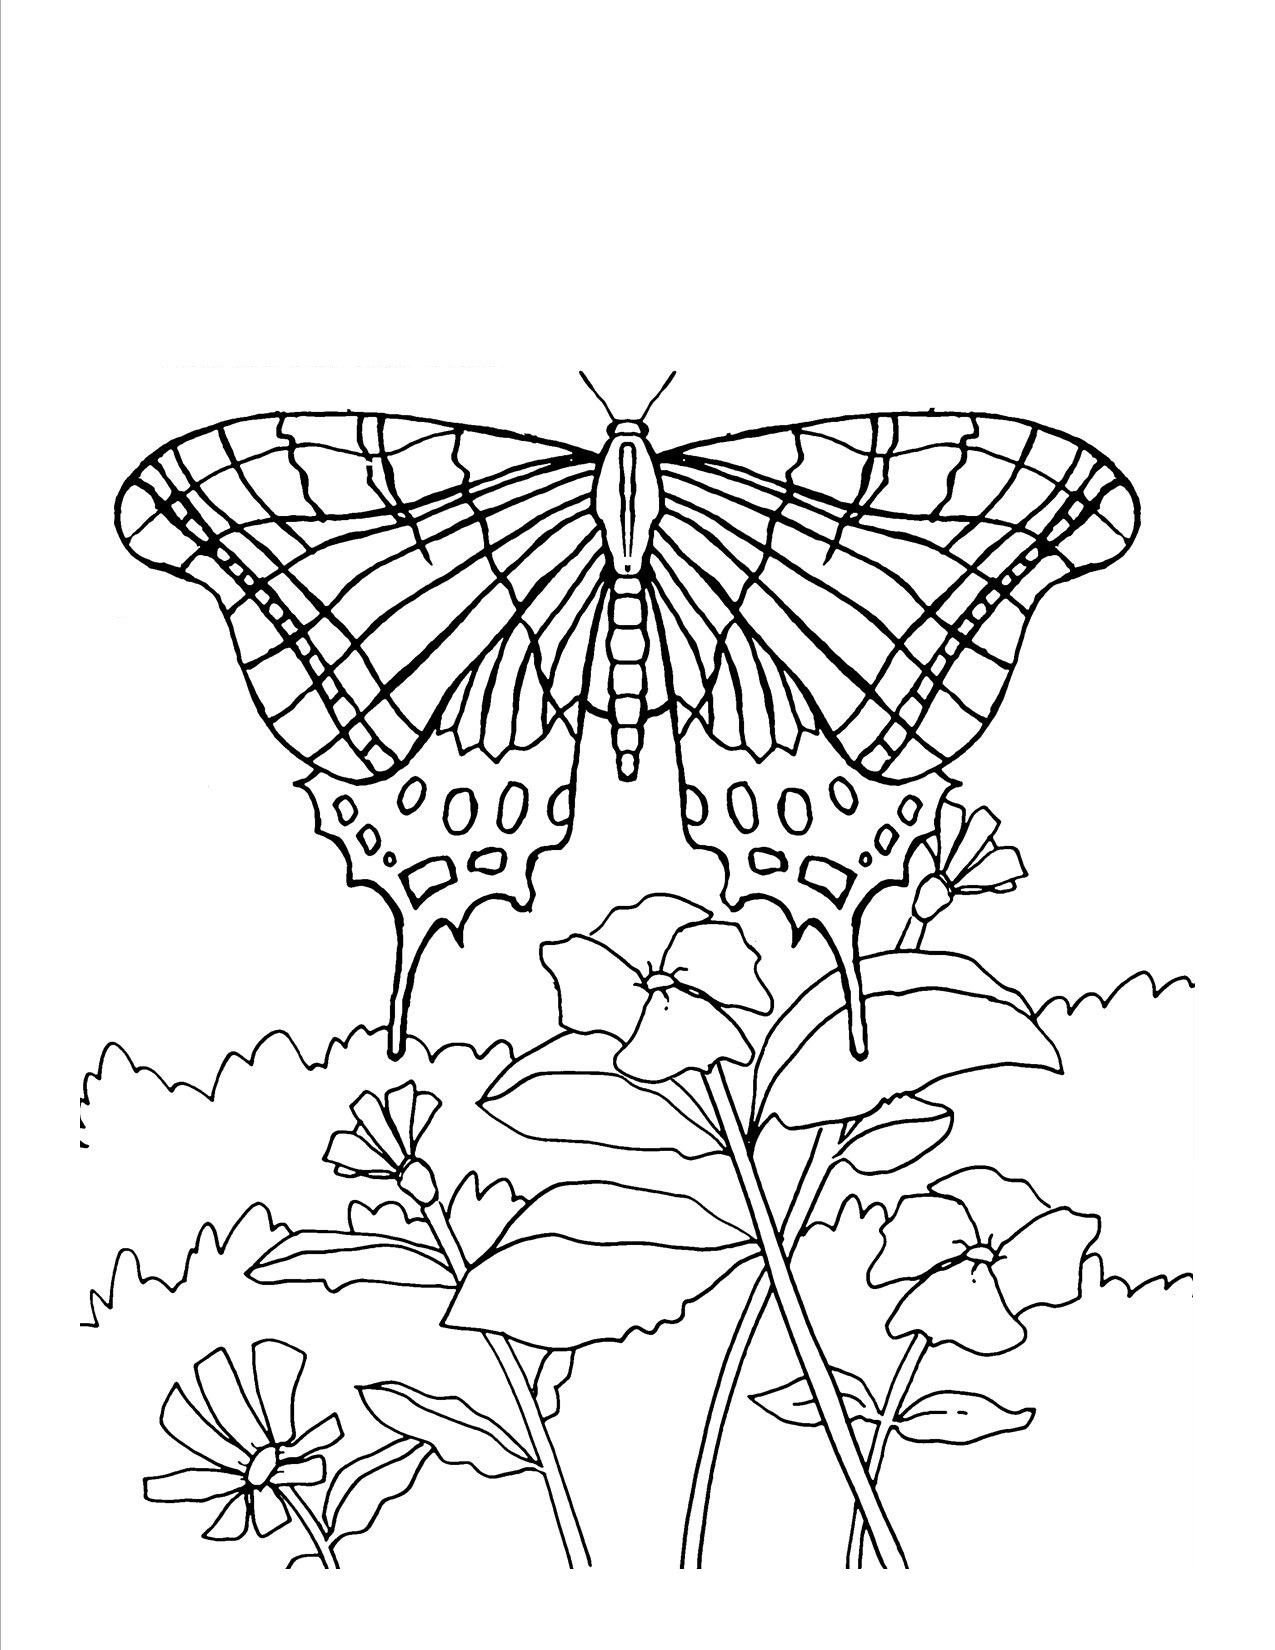 coloring pages with butterflies monarch butterfly coloring pages to print free coloring with butterflies pages coloring